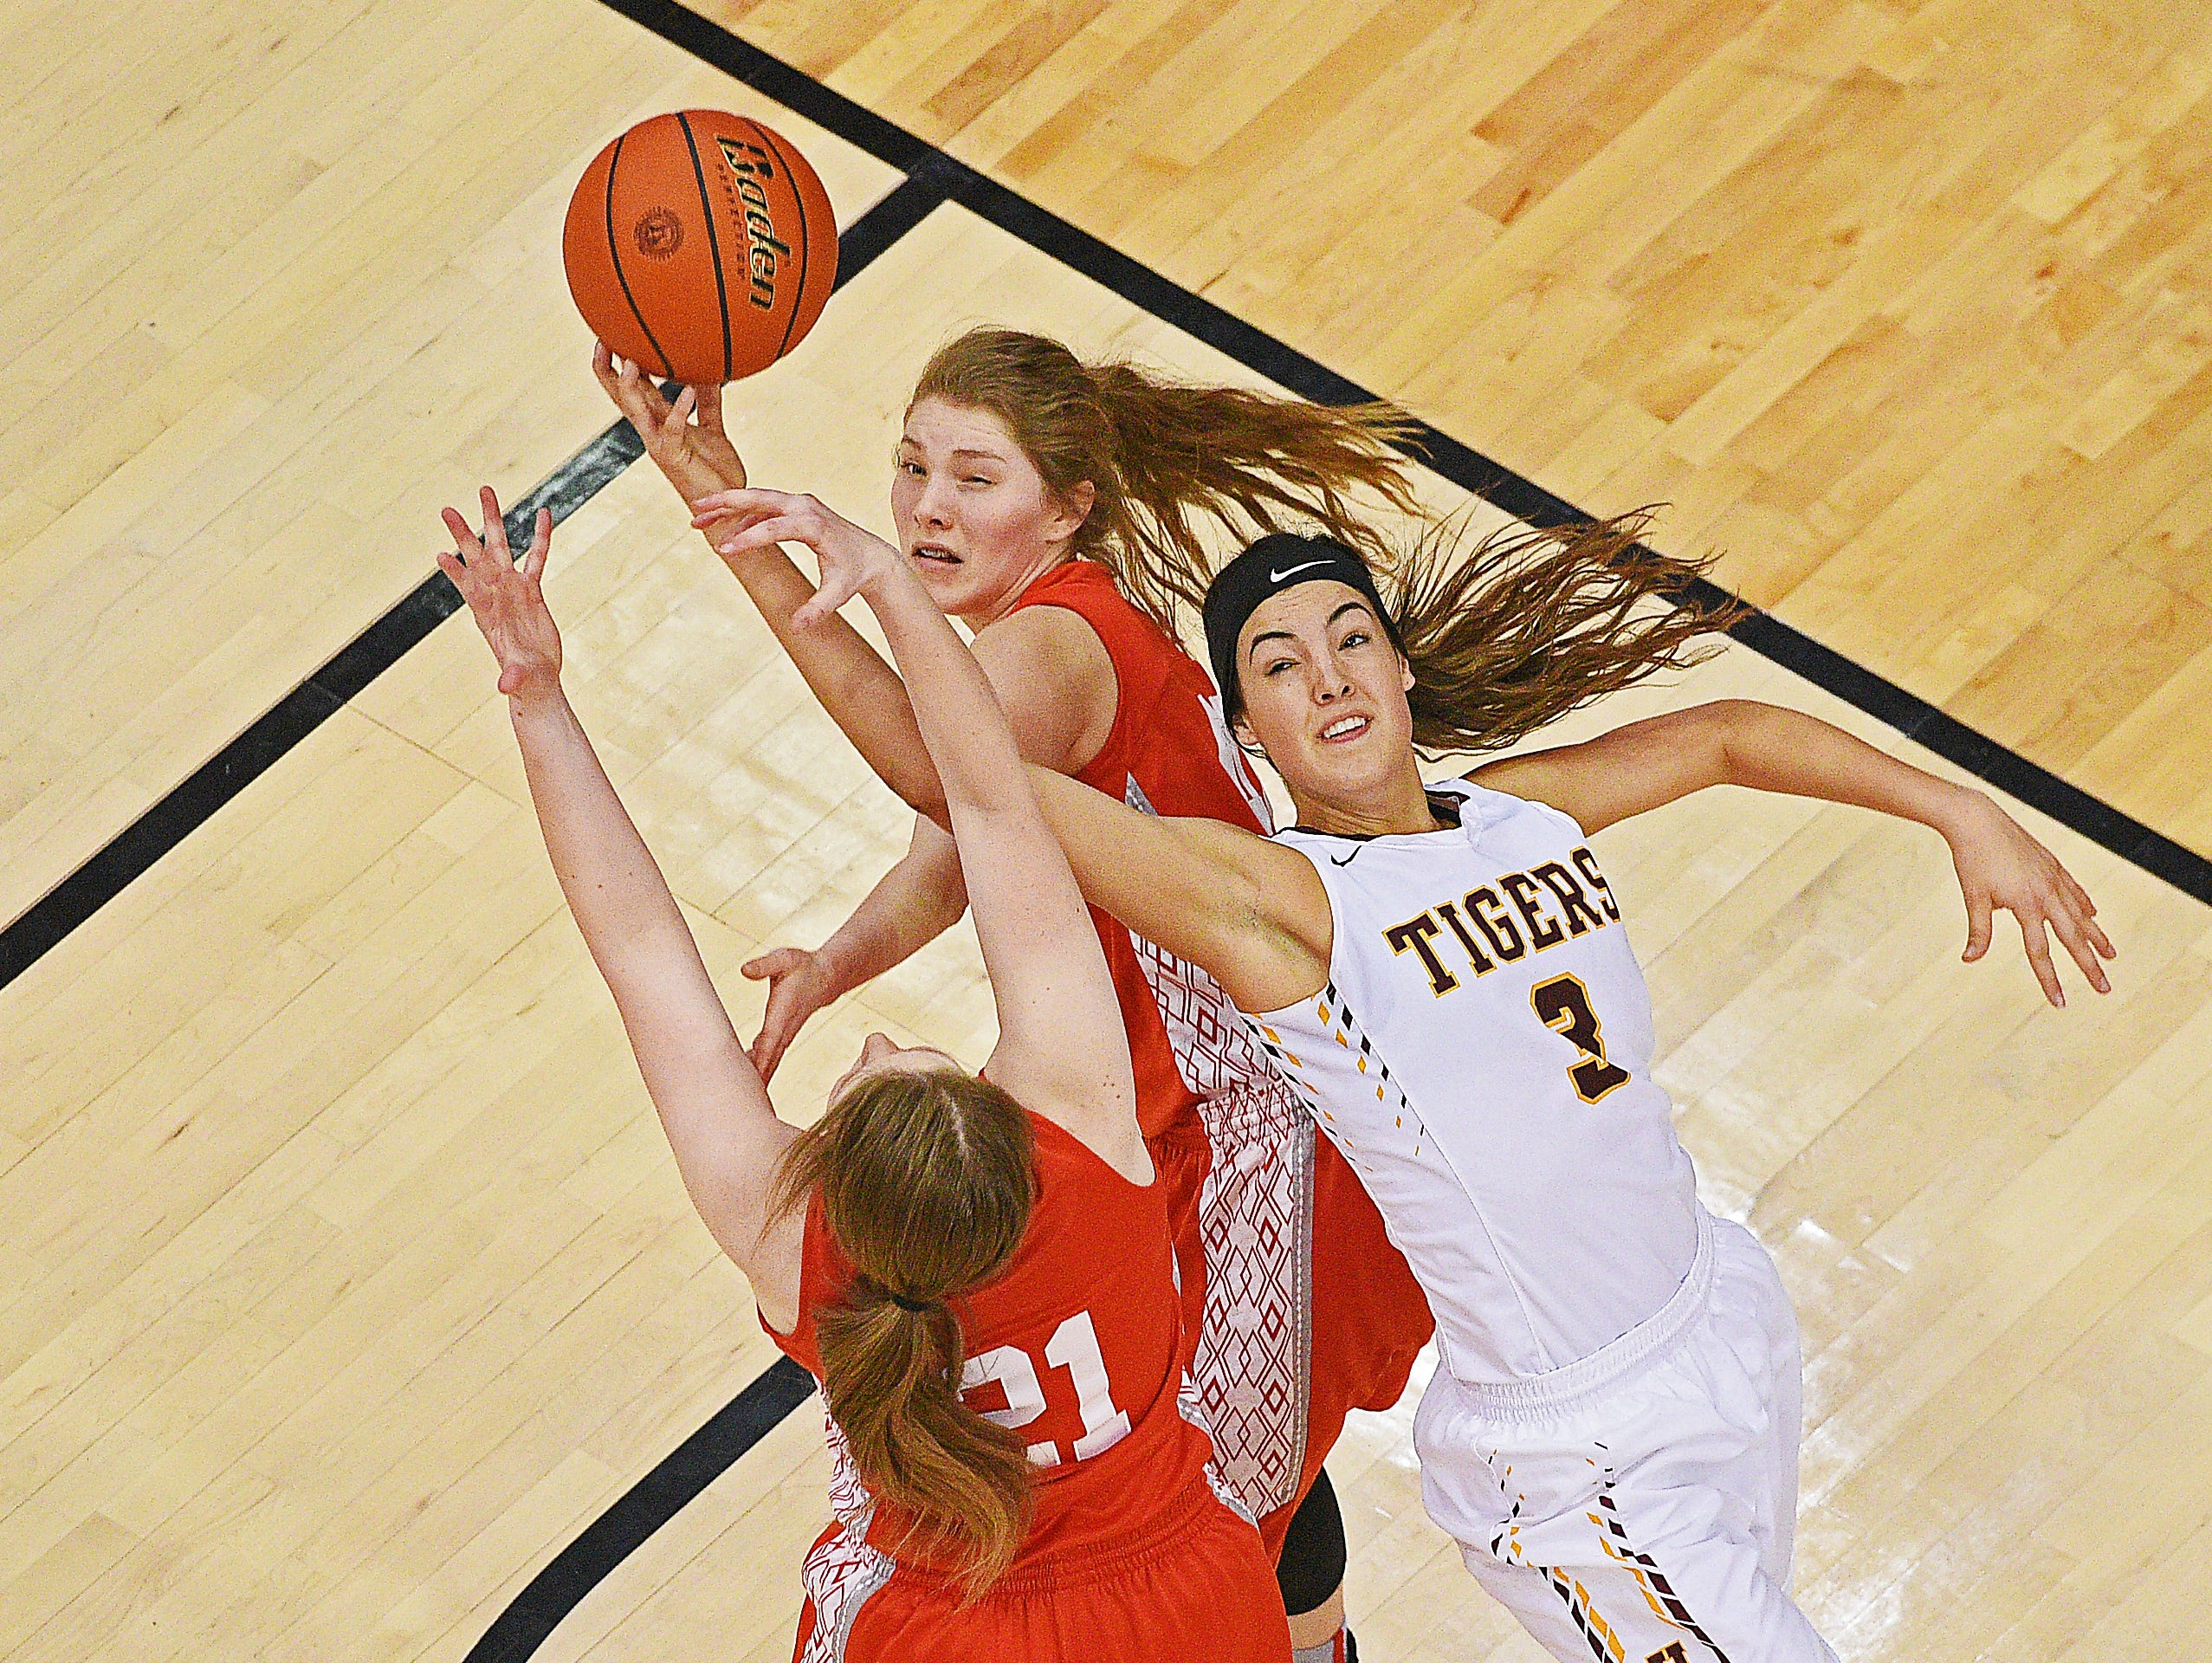 Harrisburg's Sami Slaughter (3) reaches for a rebound over Rapid City Central's Juneau Jones (42) and Abby Johnson (21) during a 2017 SDHSAA Class AA State Girls Basketball semifinal game Friday, March 17, 2017, at Rushmore Plaza Civic Center in Rapid City. Harrisburg beat Rapid City Central 49-44, and will play in Saturday's final.